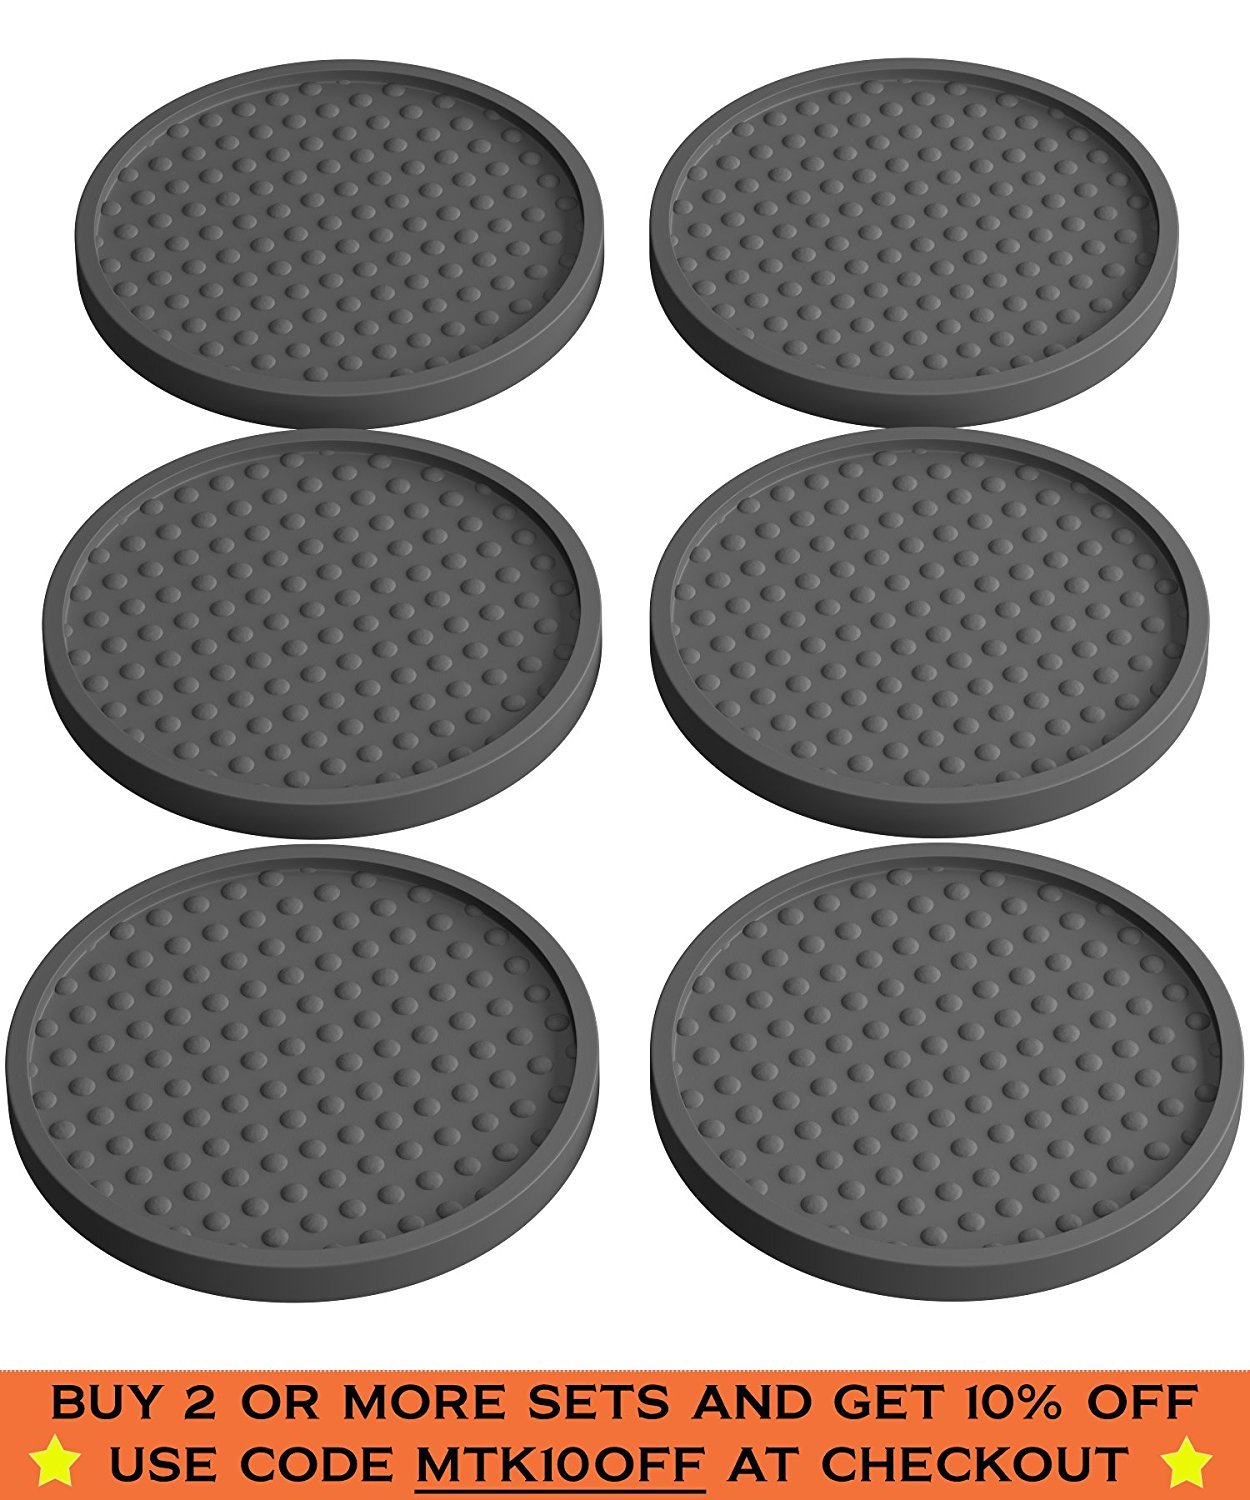 amazoncom  drink coasters silicone  pack with good grip on any  - amazoncom  drink coasters silicone  pack with good grip on any table orbar prevents furniture damage large modern soft rubber coaster place matfor